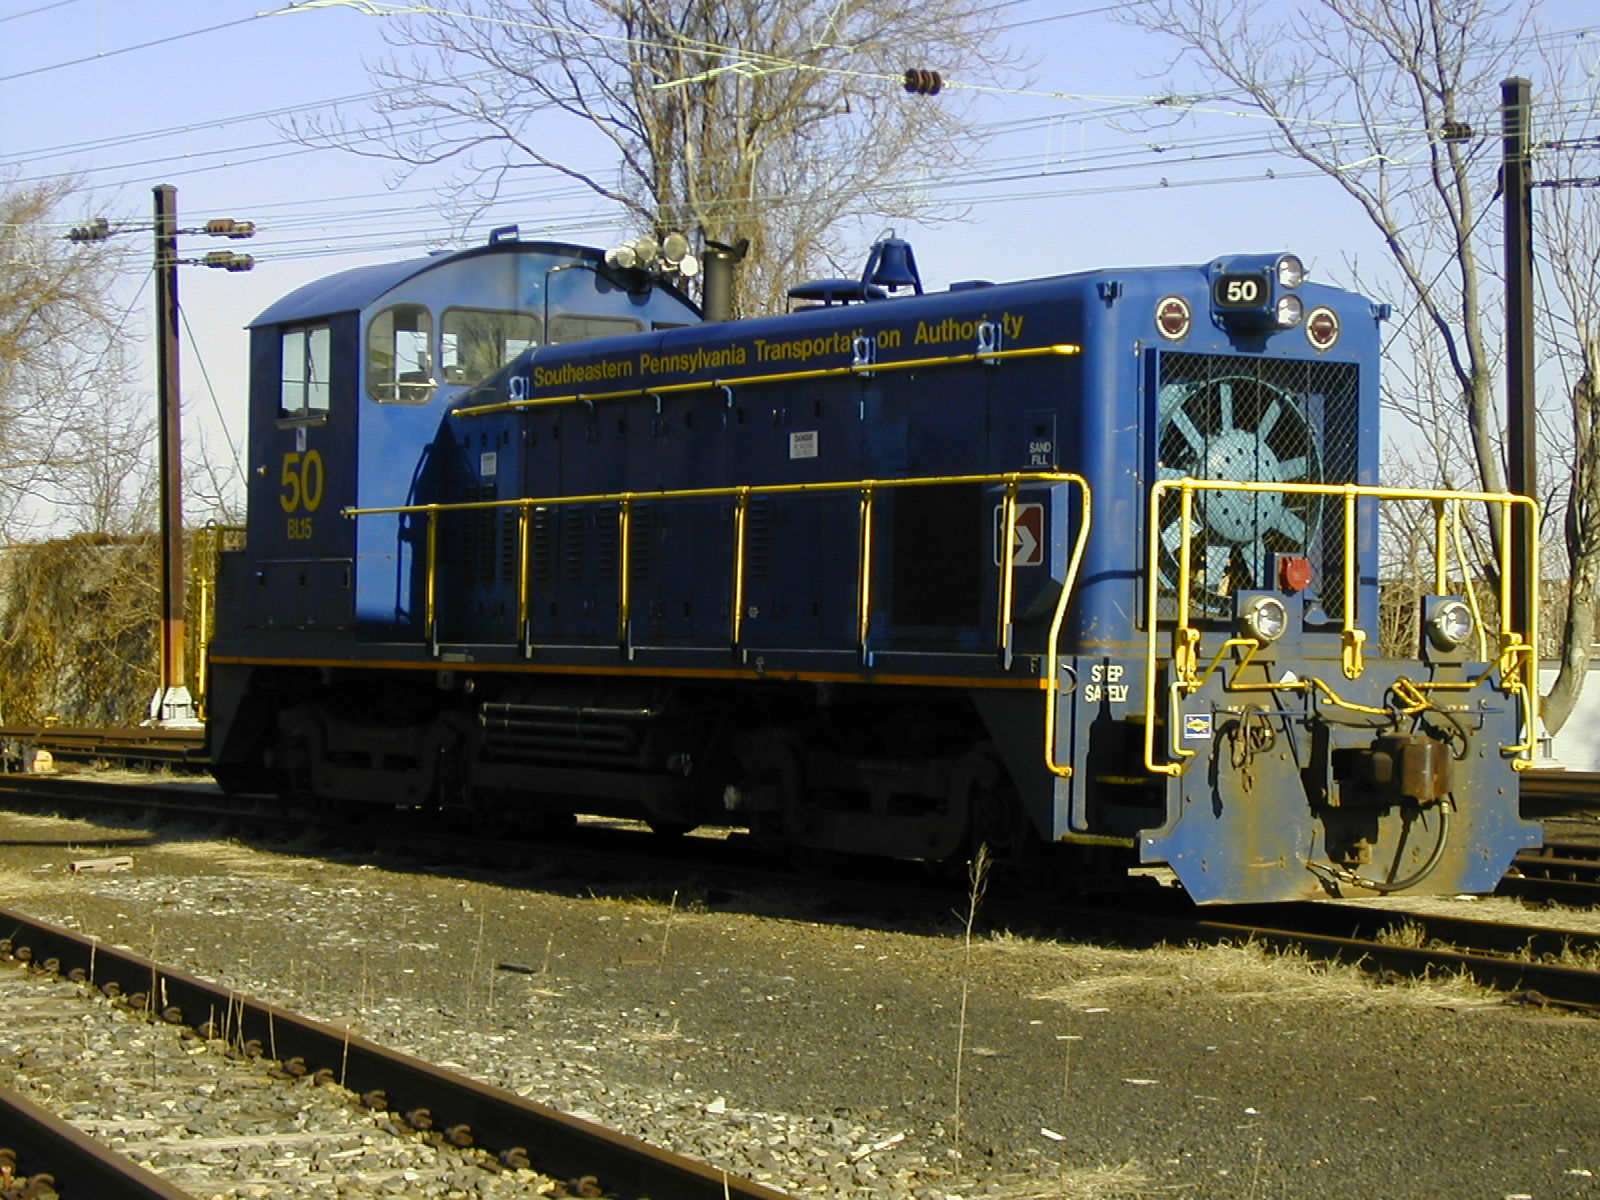 Septa Sustainability Epa Awards Clean Diesel Grant To Fuel Filters Repower Locomotive With Emissions Reducing Technology